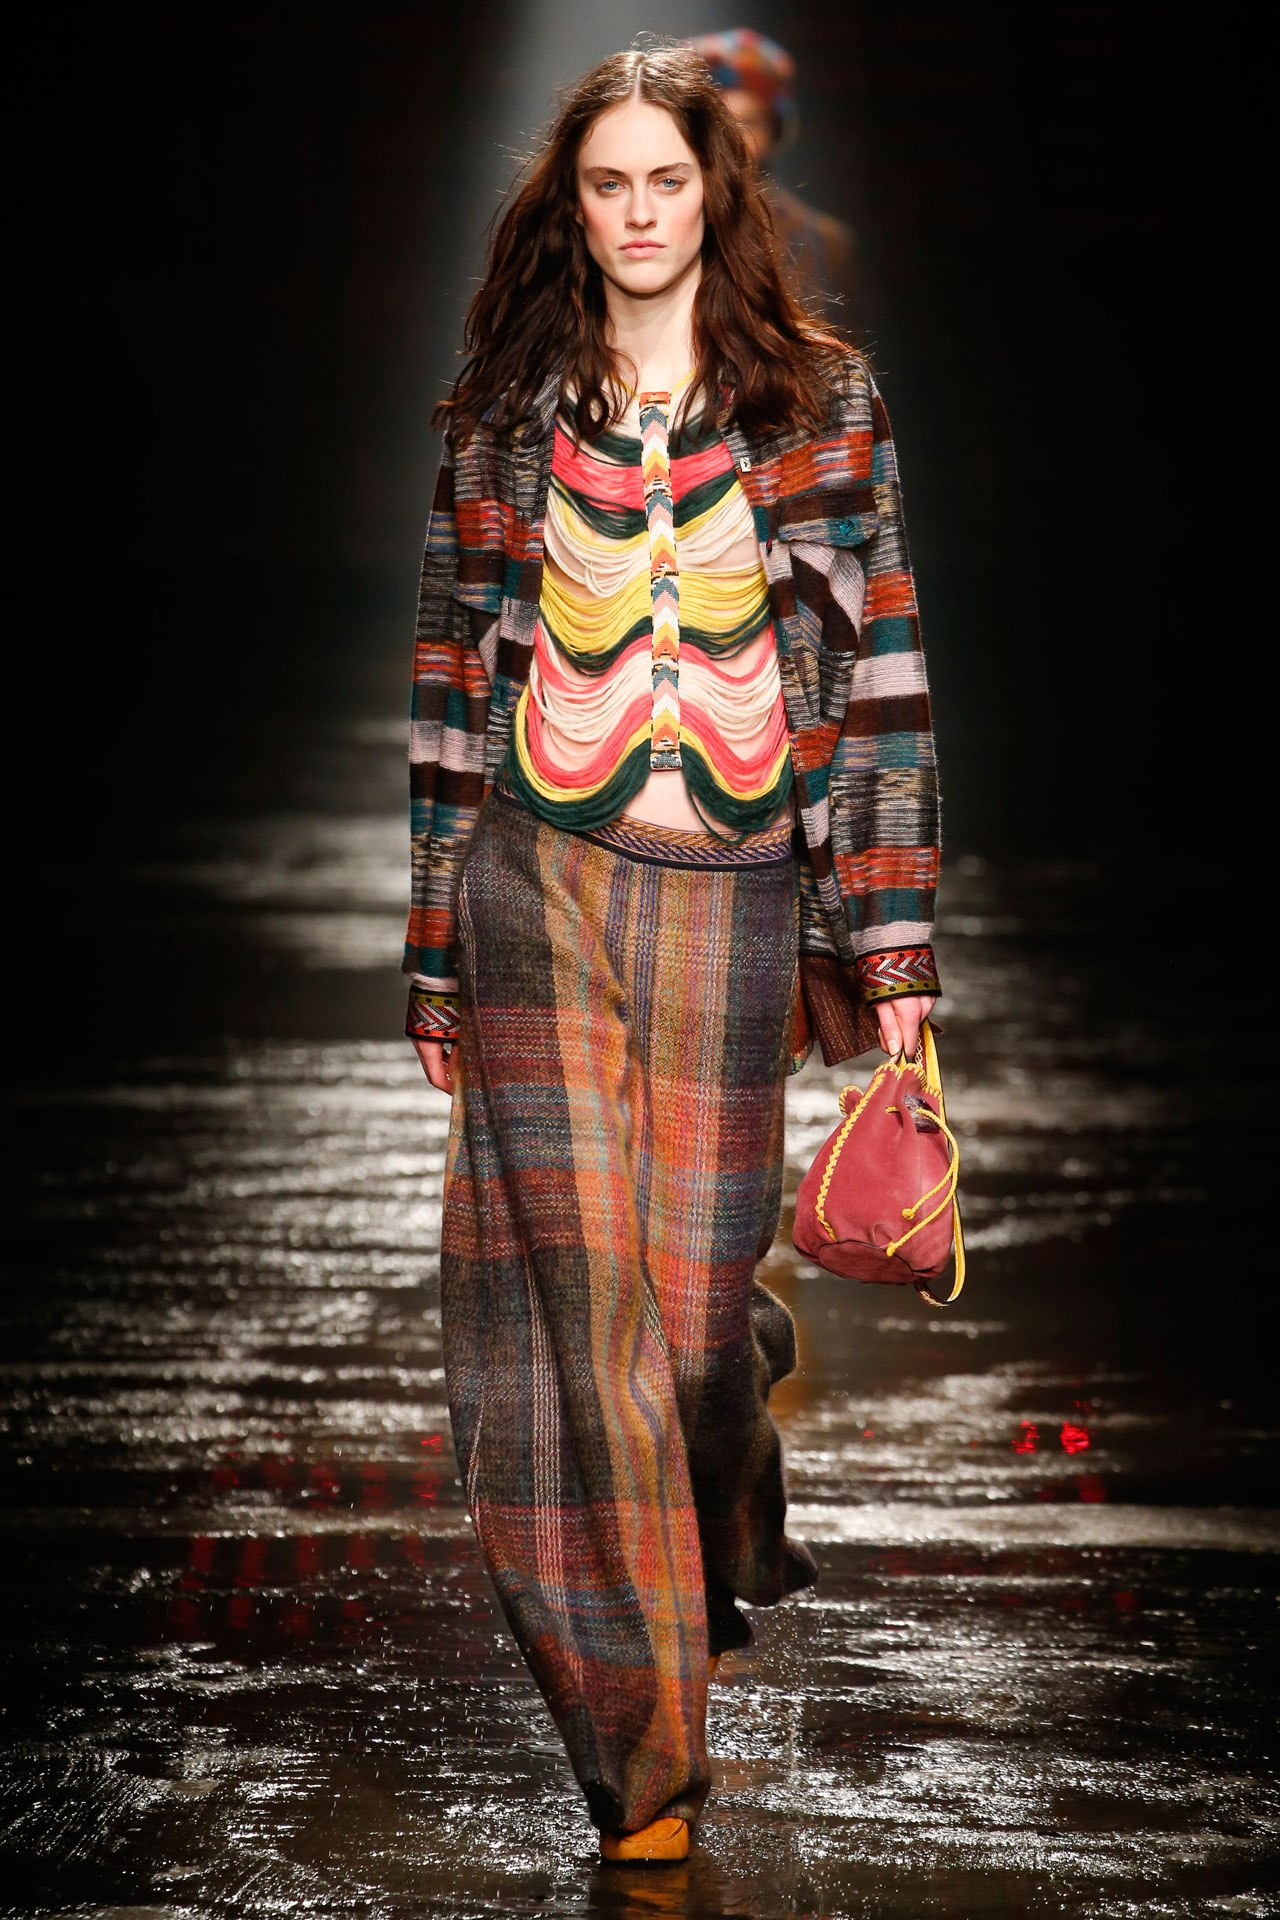 A look from Missoni's ready-to-wear autumn/winter '18/'19 collection. Image credit: Indigital